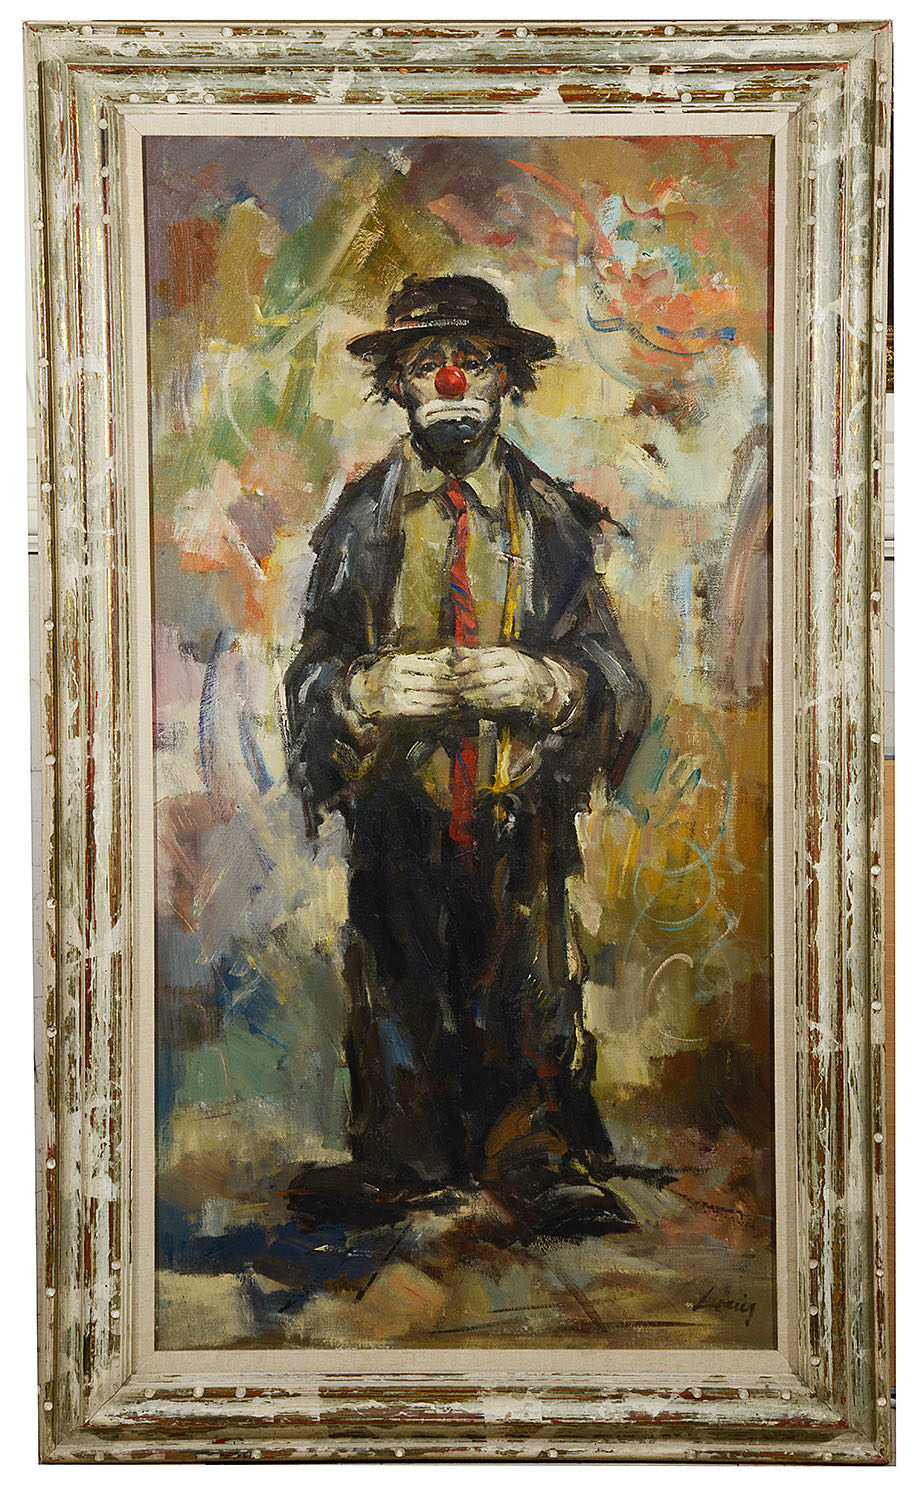 Lot 56 - Louis Spiegel (American, 1901-1975) 'Study of standing clown', a large oil on canvas